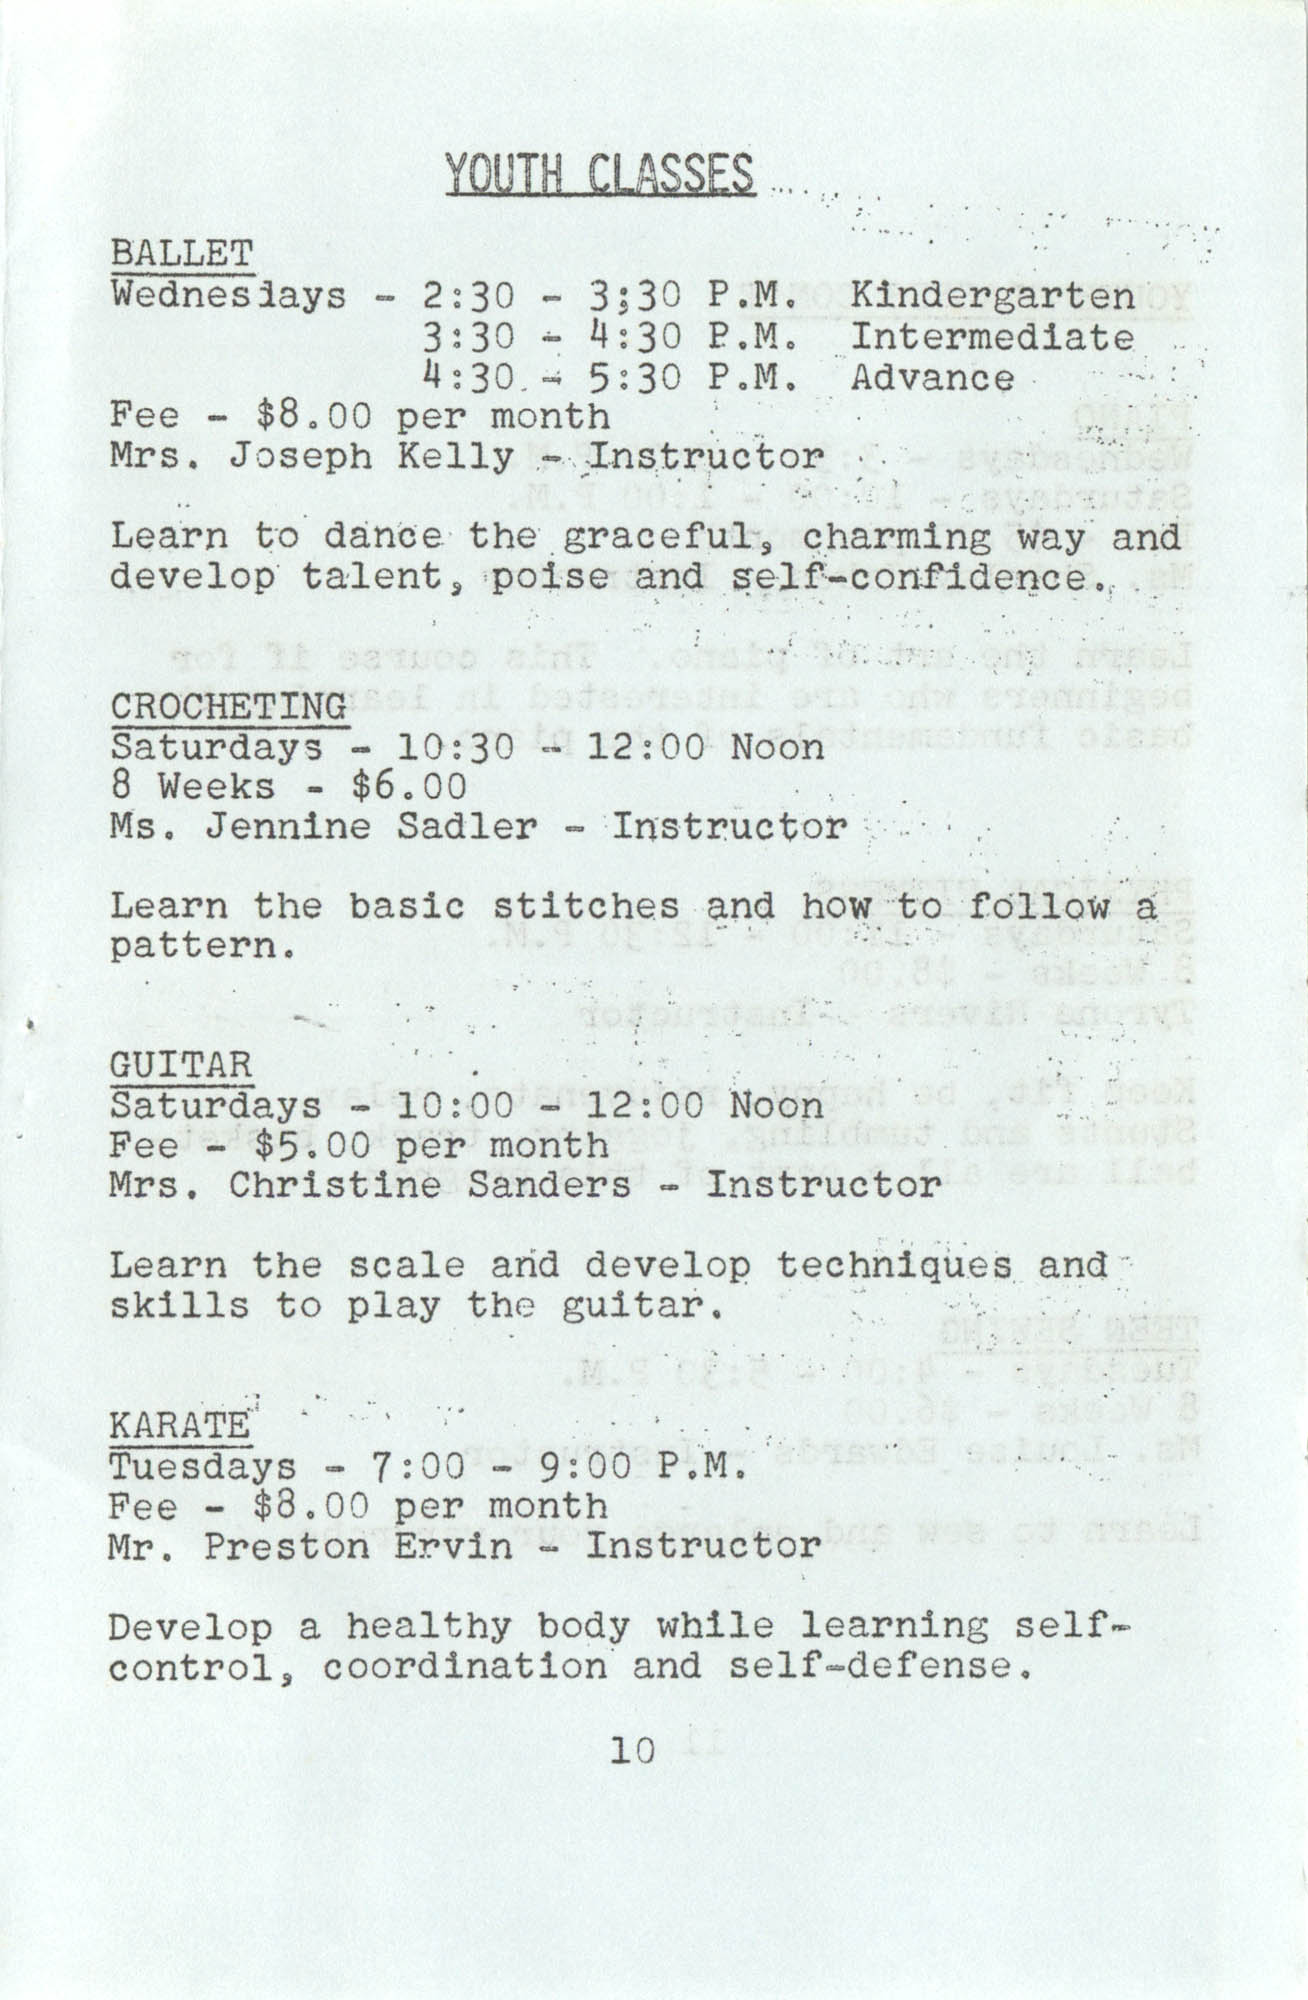 Spring 1975 Schedule, Y.W.C.A. of Greater Charleston, Page 10